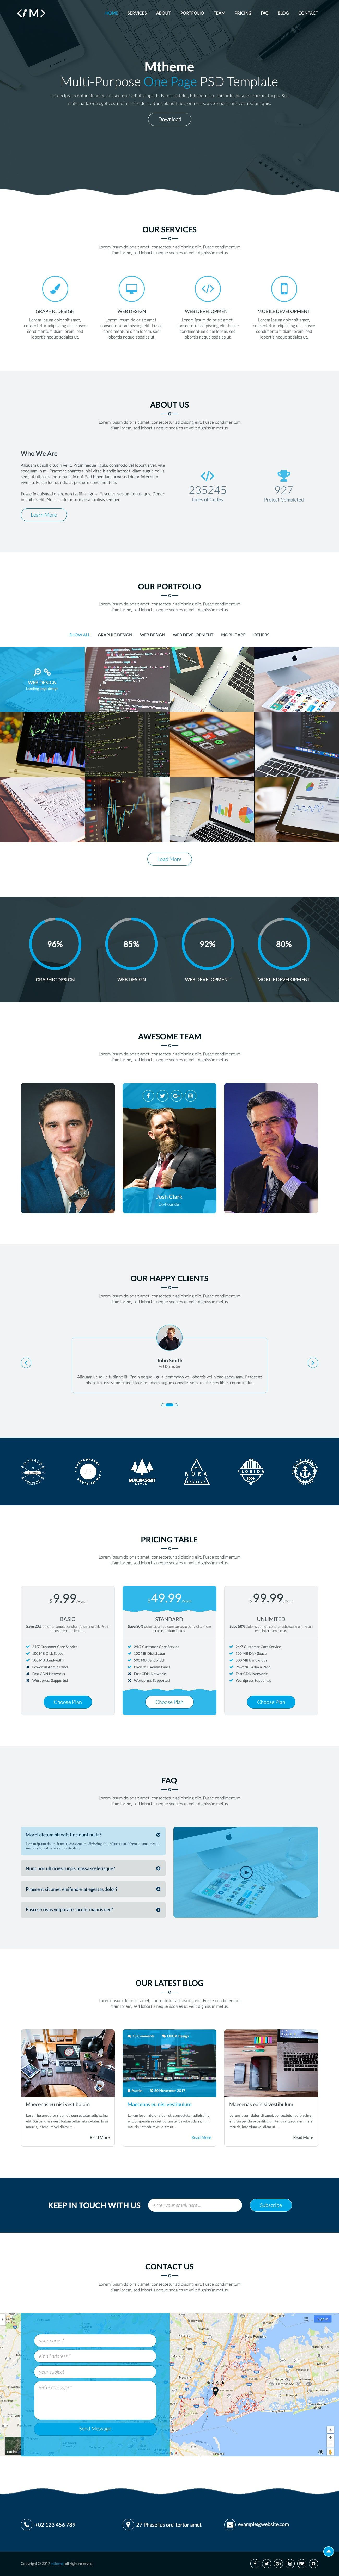 MTheme - Multi-Purpose One Page PSD Template Screenshot 2